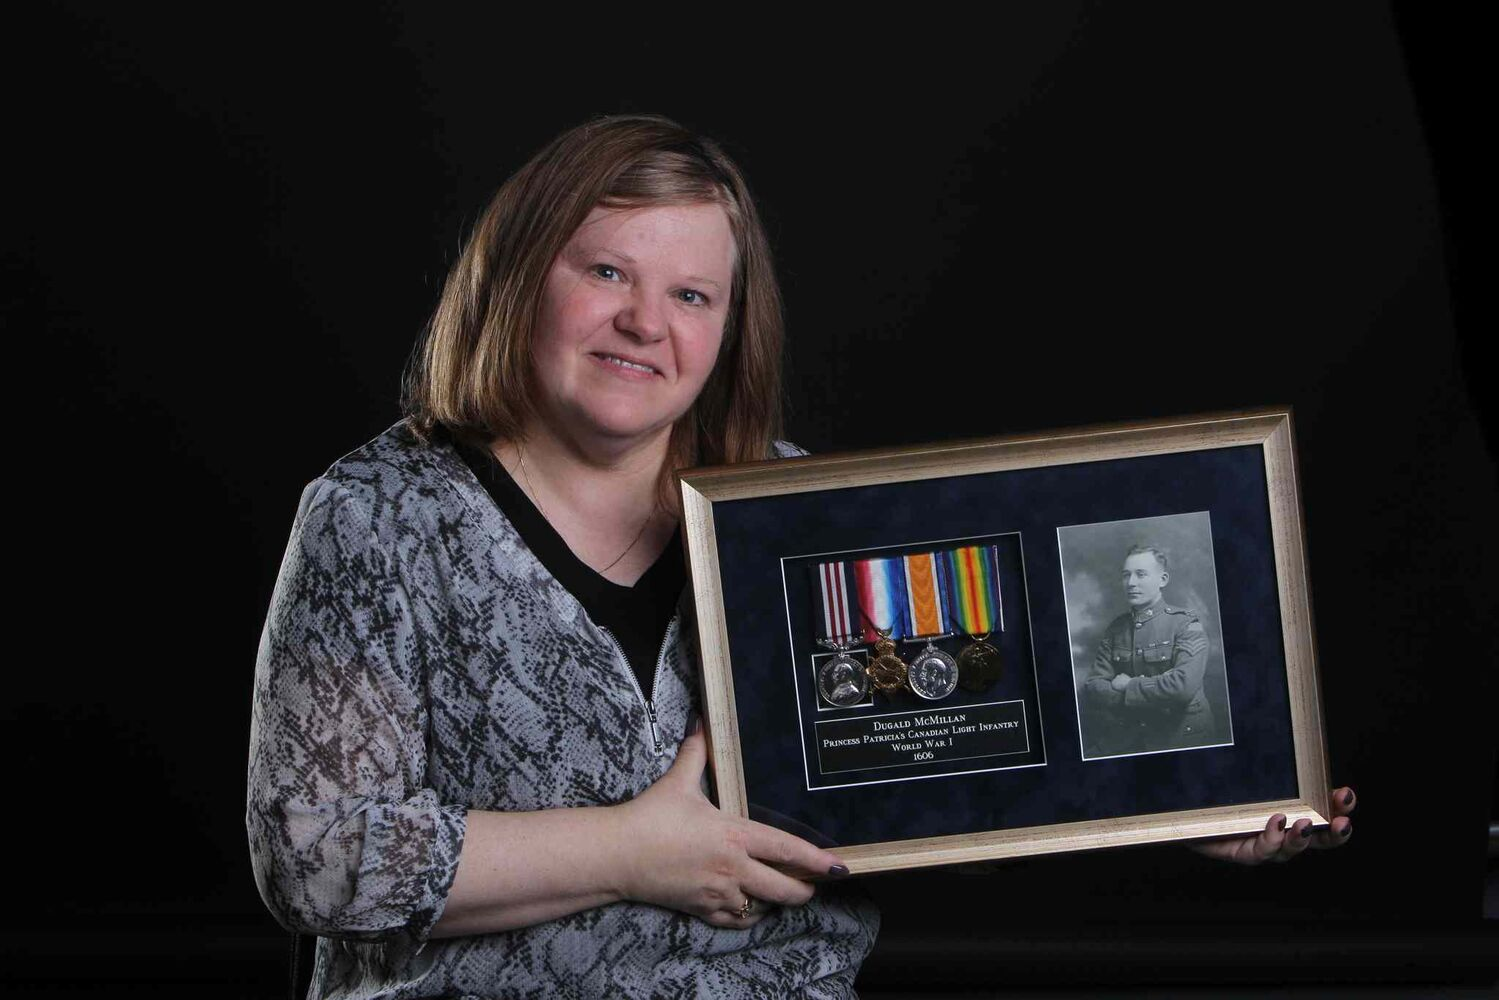 Margaret McMillan holds a photograph, medals and pay book belonging to her grandfather Dugald McMillan, with Princess Patricia's Canadian Light Infantry in the First World War. (Ruth Bonneville / Winnipeg Free Press)